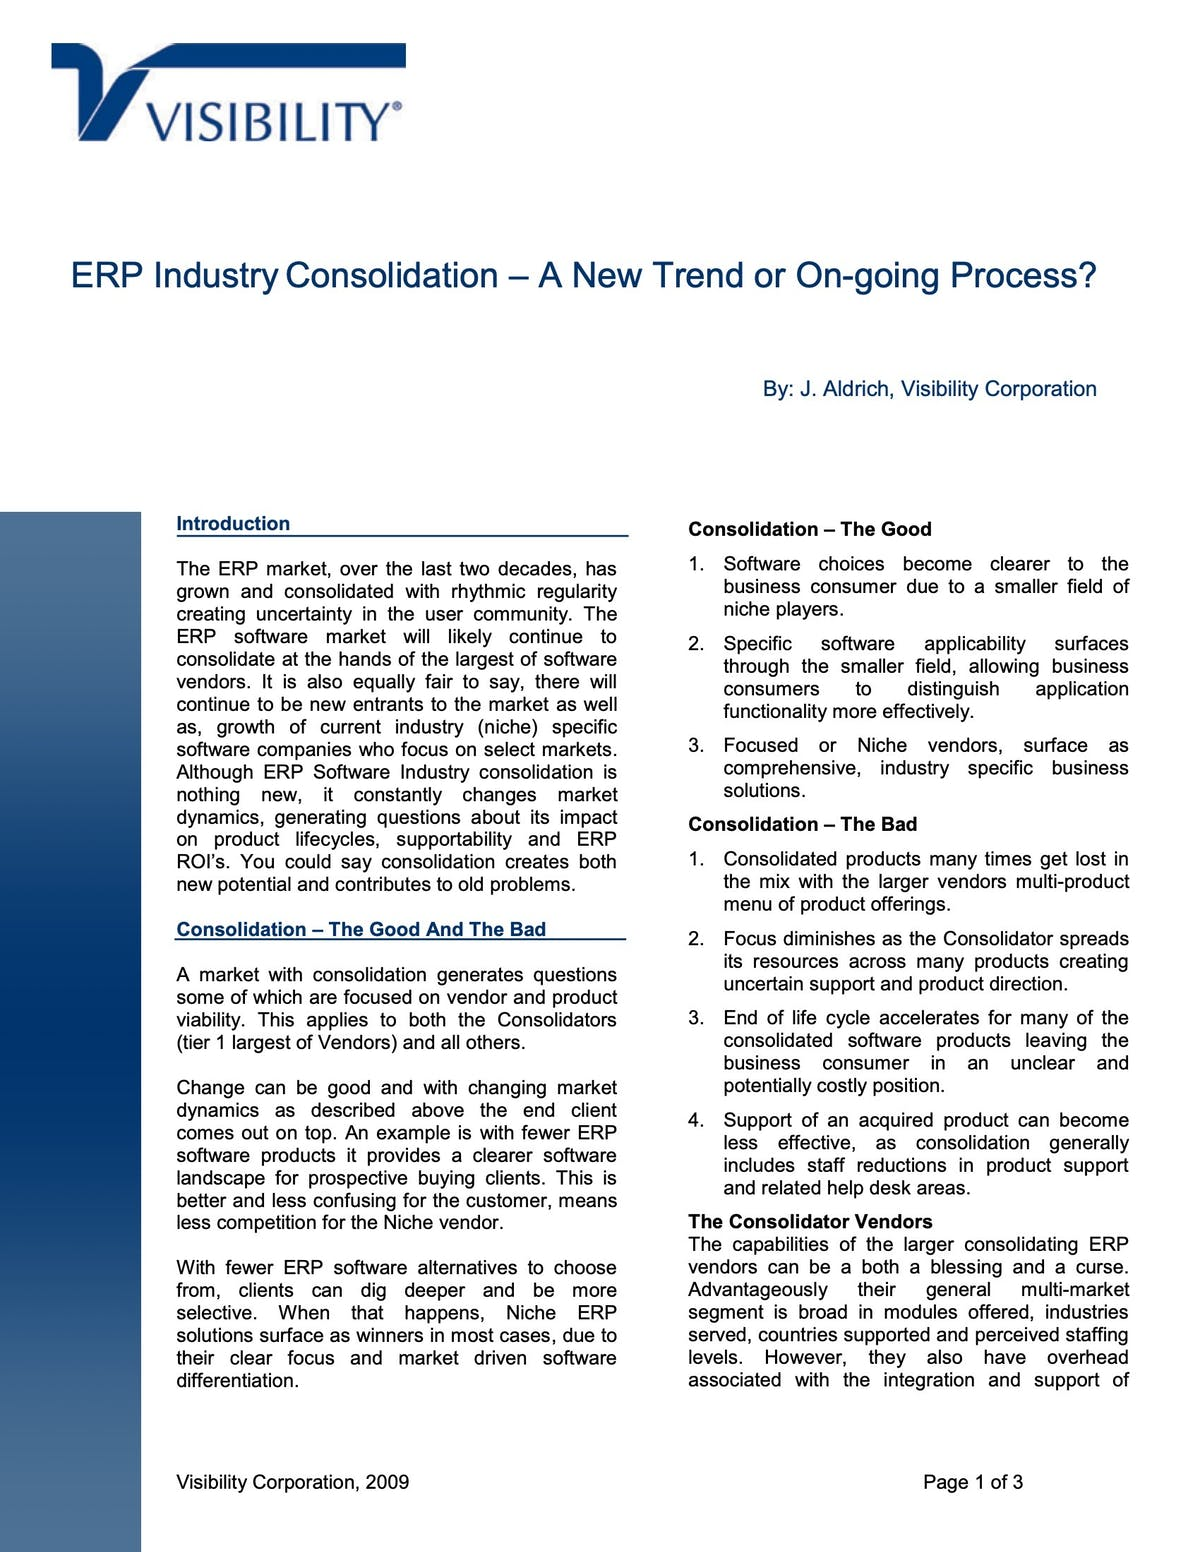 VISIBILITY.net White Paper - ERP Industry Consolidation – a New Trend or On-going Process?